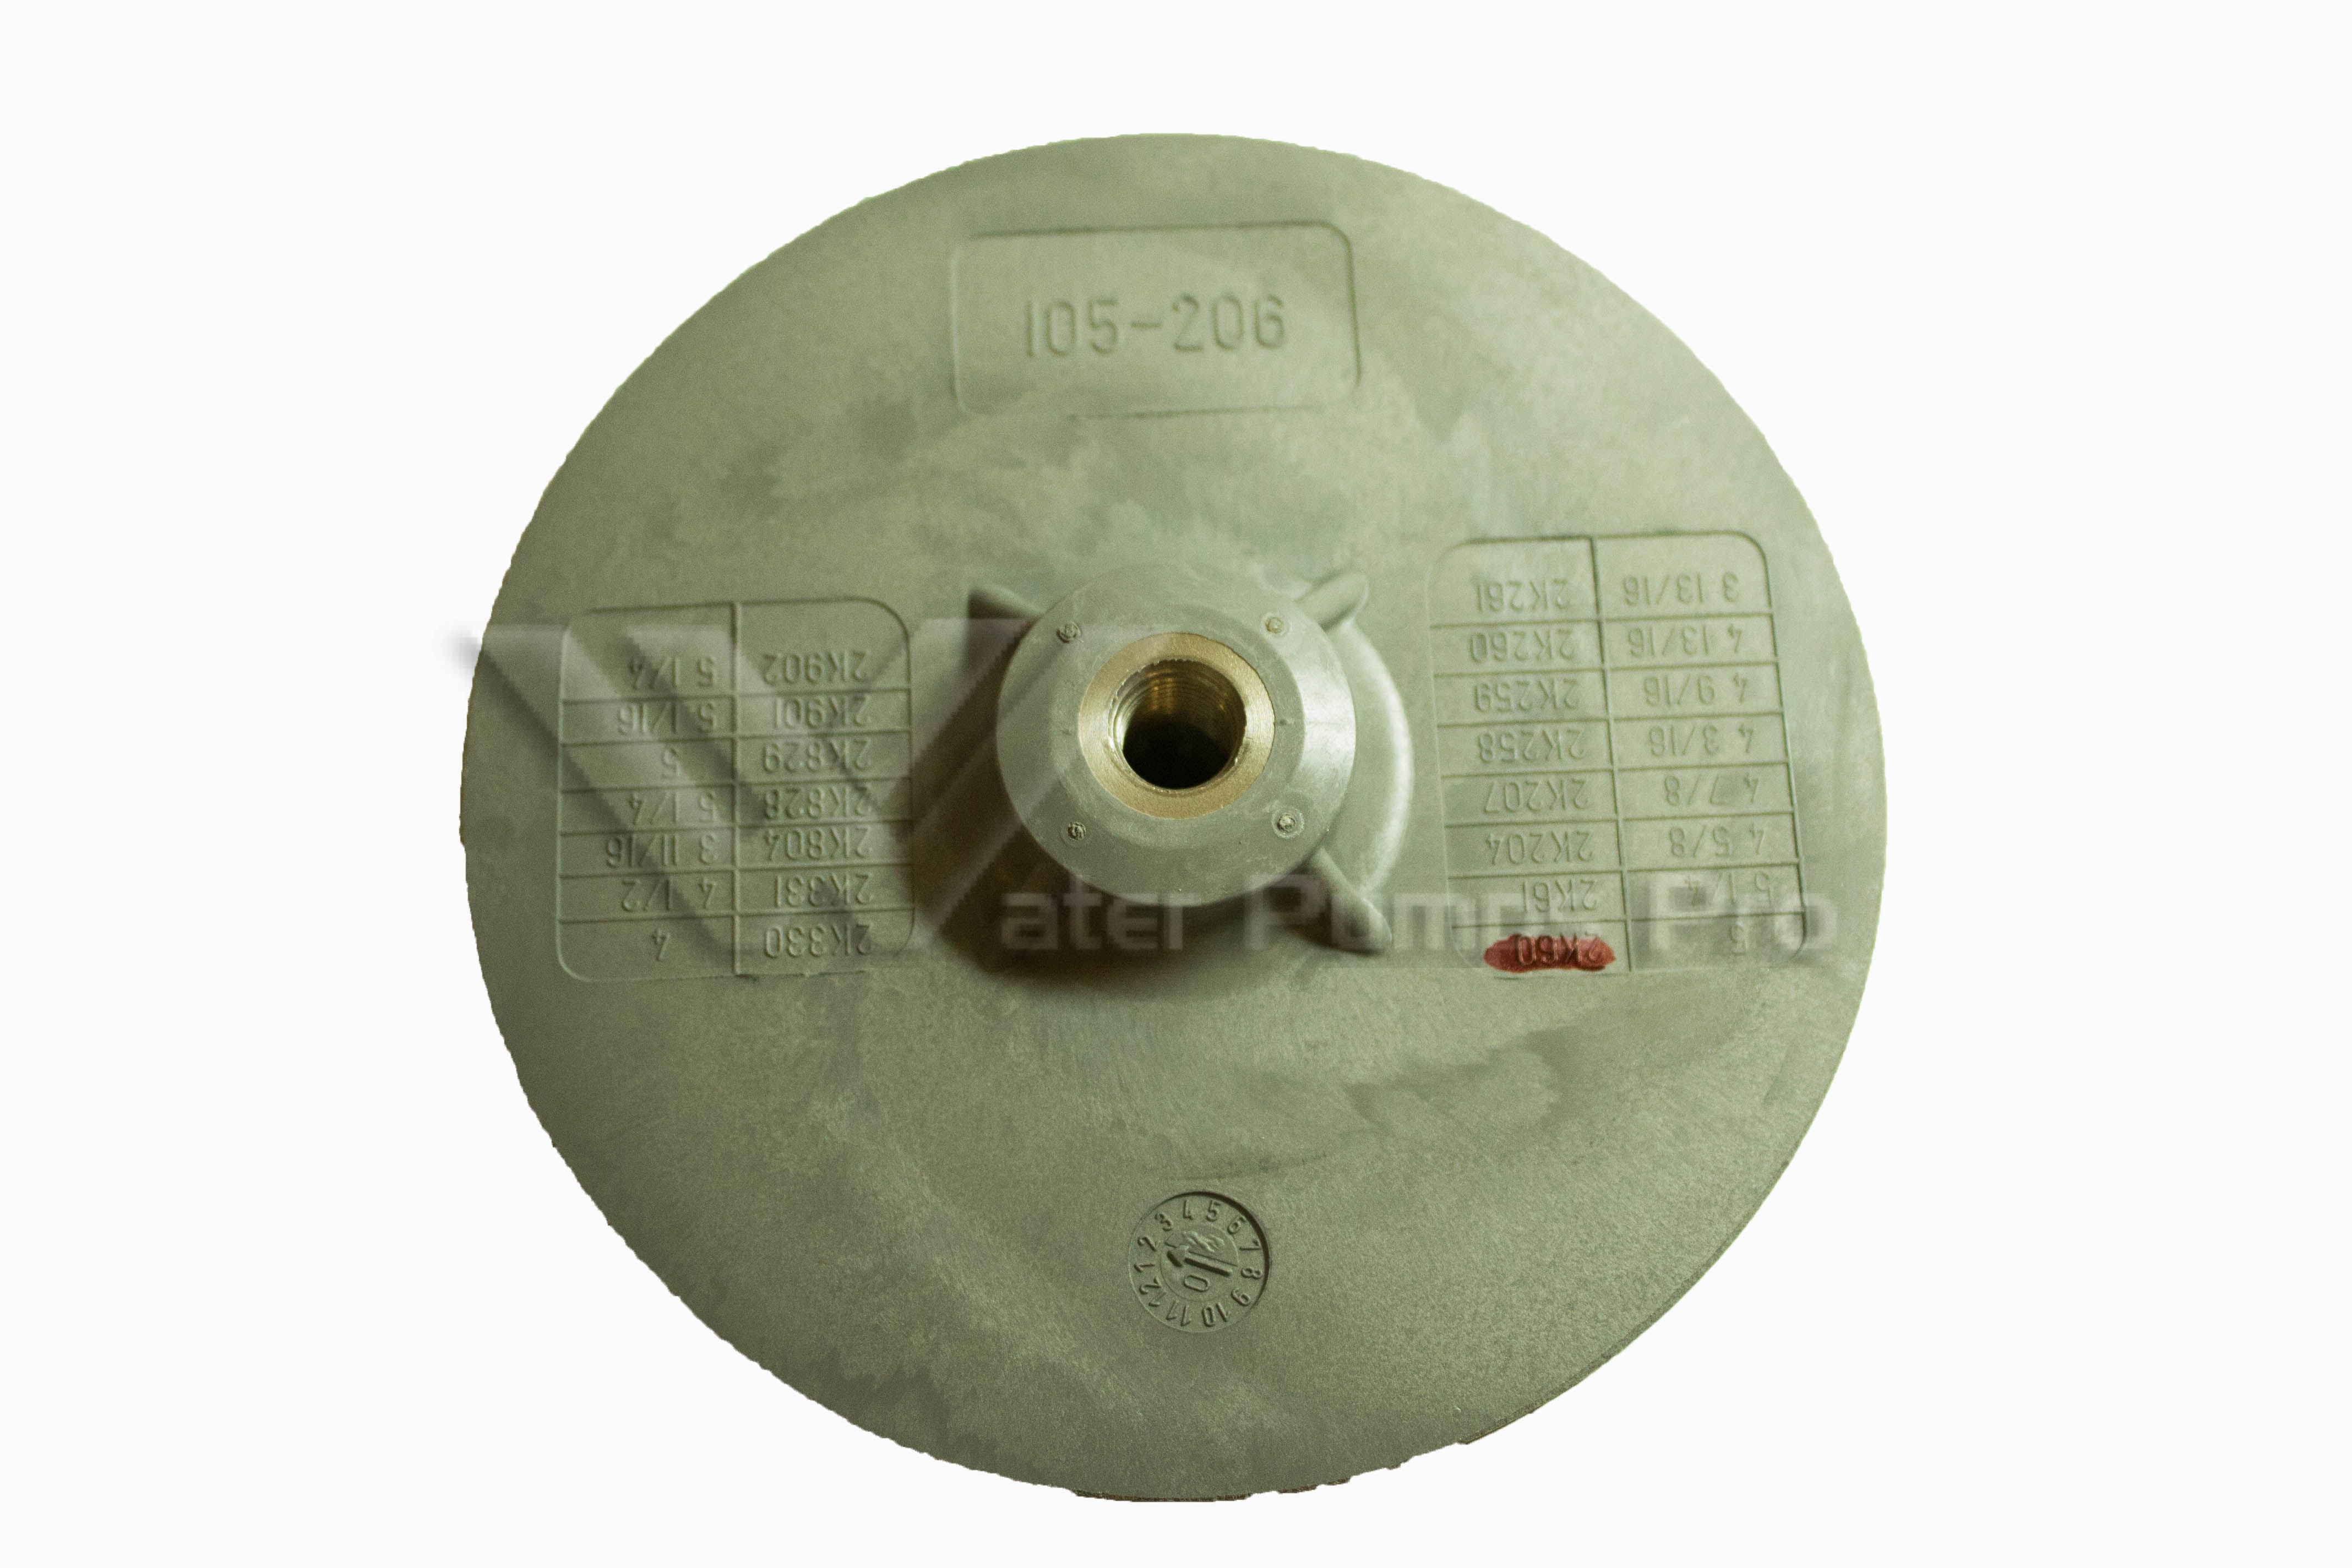 2K60 - Impeller - J+ for use on J7, J7S